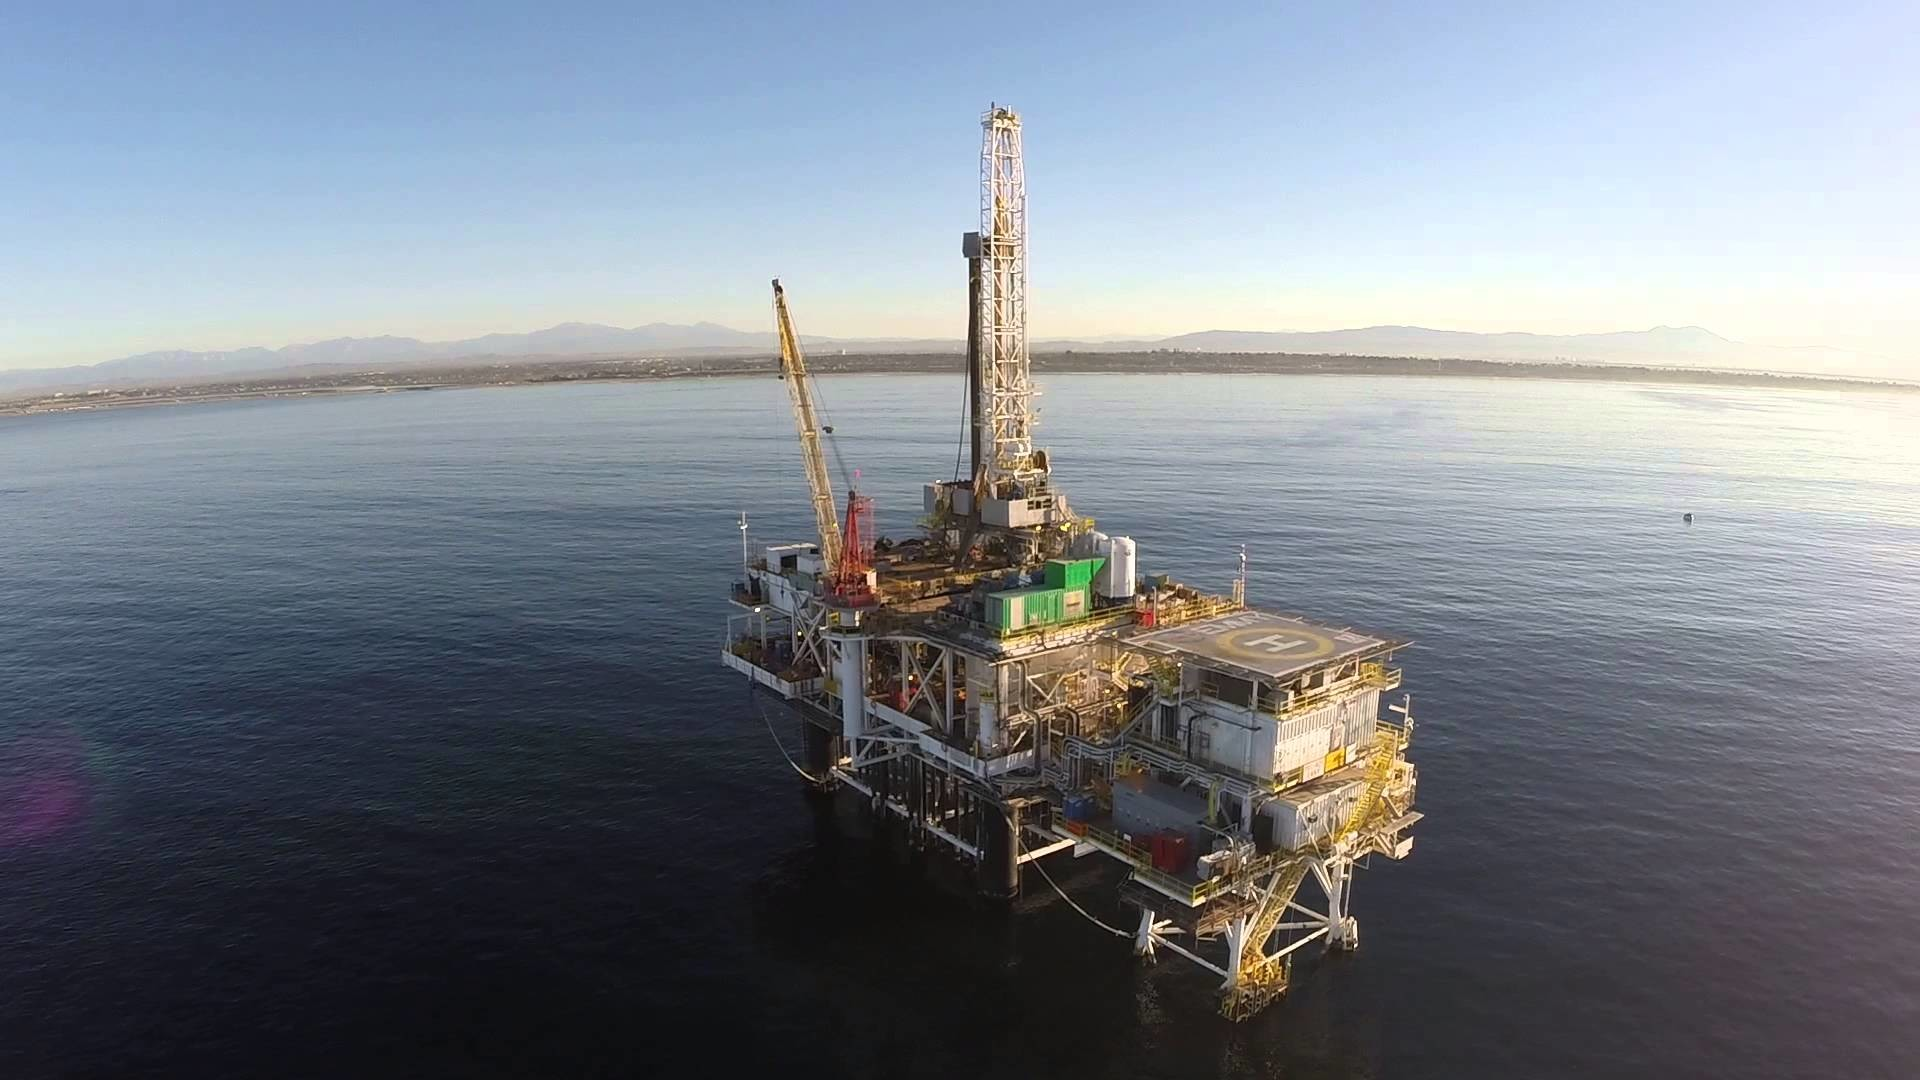 1920x1080 Phantom 2 Flight to Oil Rig Emmy